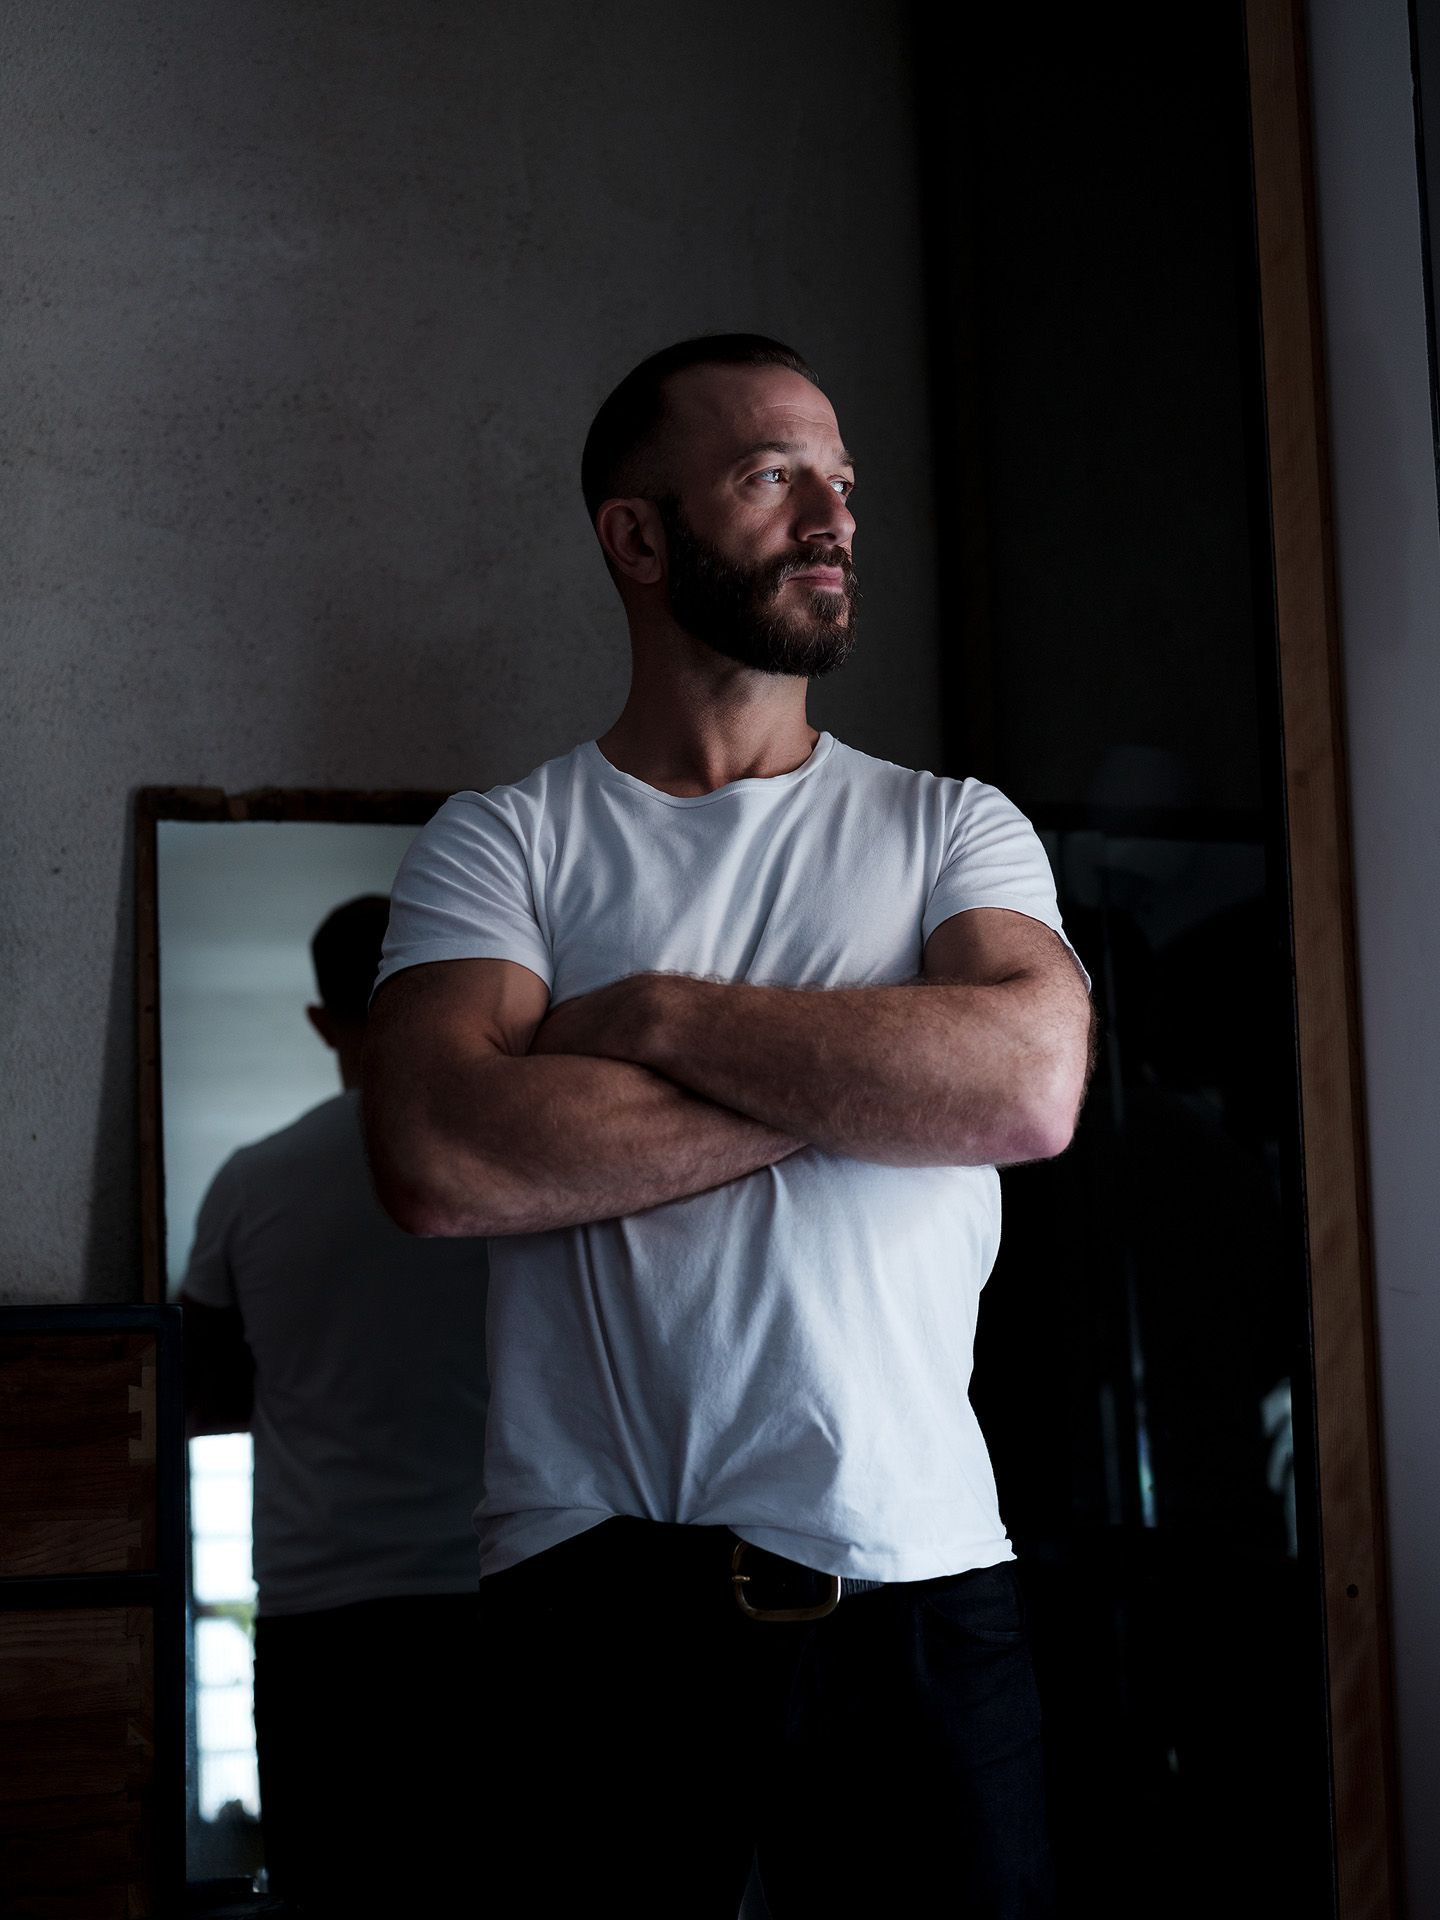 saxophonist and composer Colin Stetson wearing white shirt posing next to a window with his arms crossed looking out to the outside photographed by Guillaume Simoneau